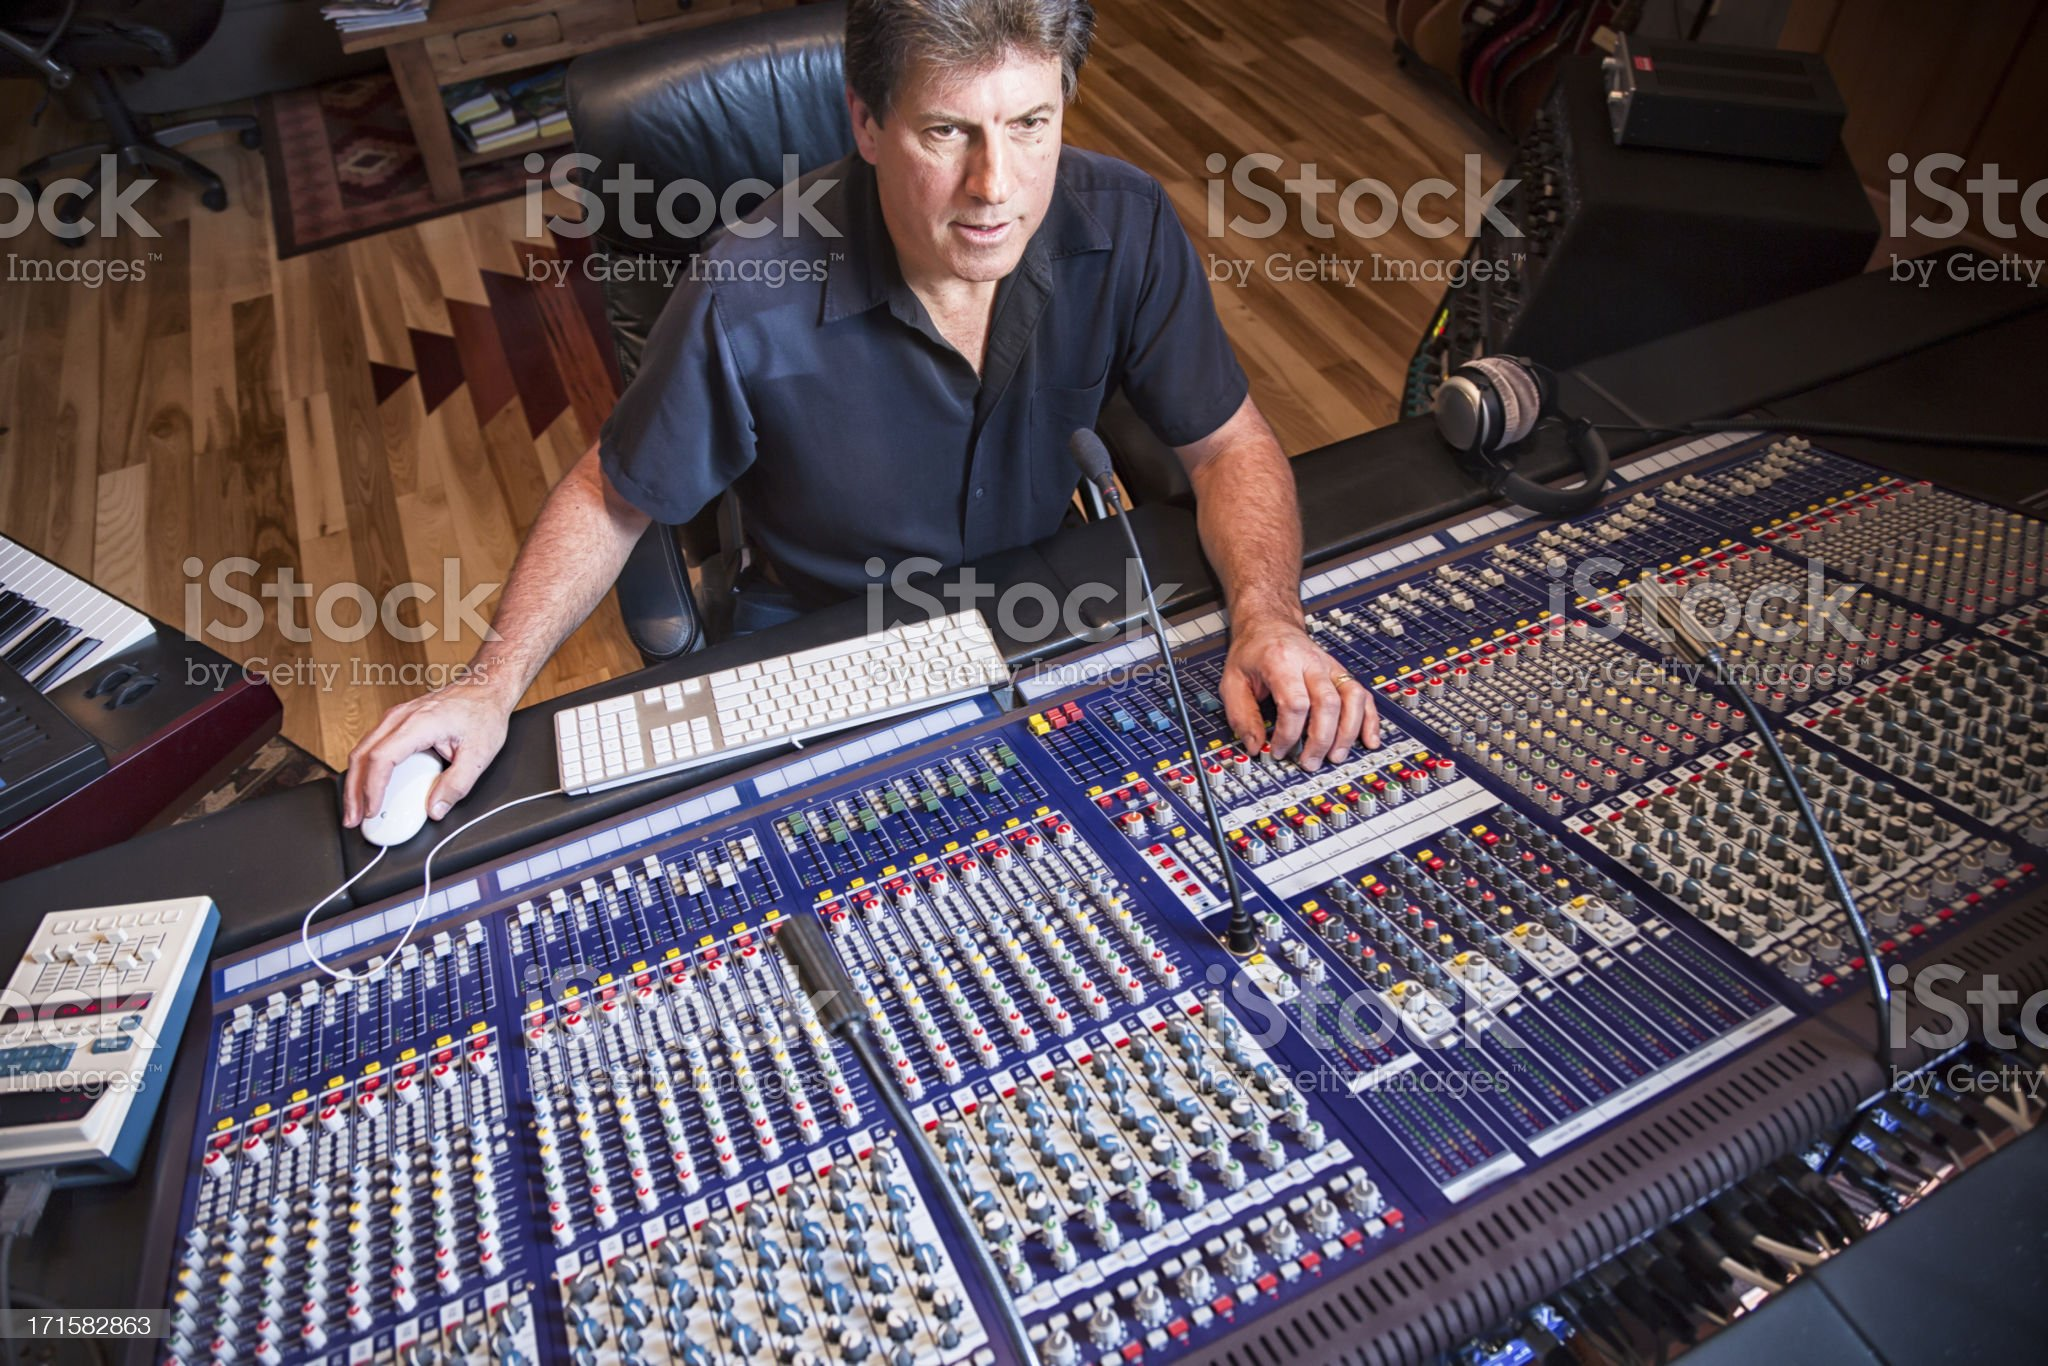 Male Recording Engineer and Artist in Studio royalty-free stock photo